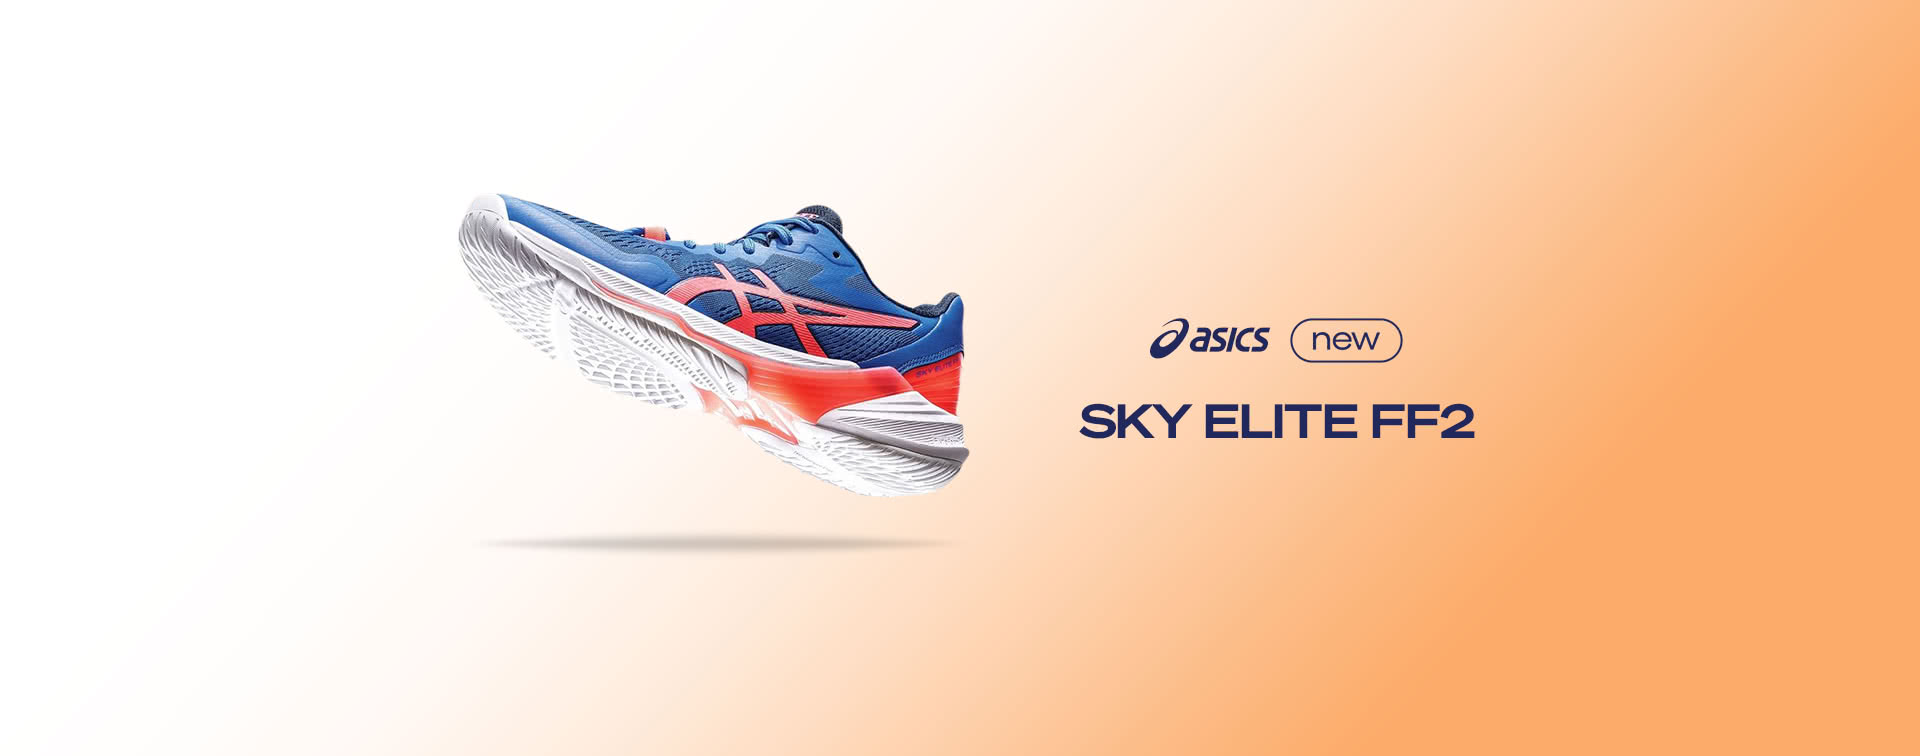 Asics Gle Sky Elite Volleyball Shoes